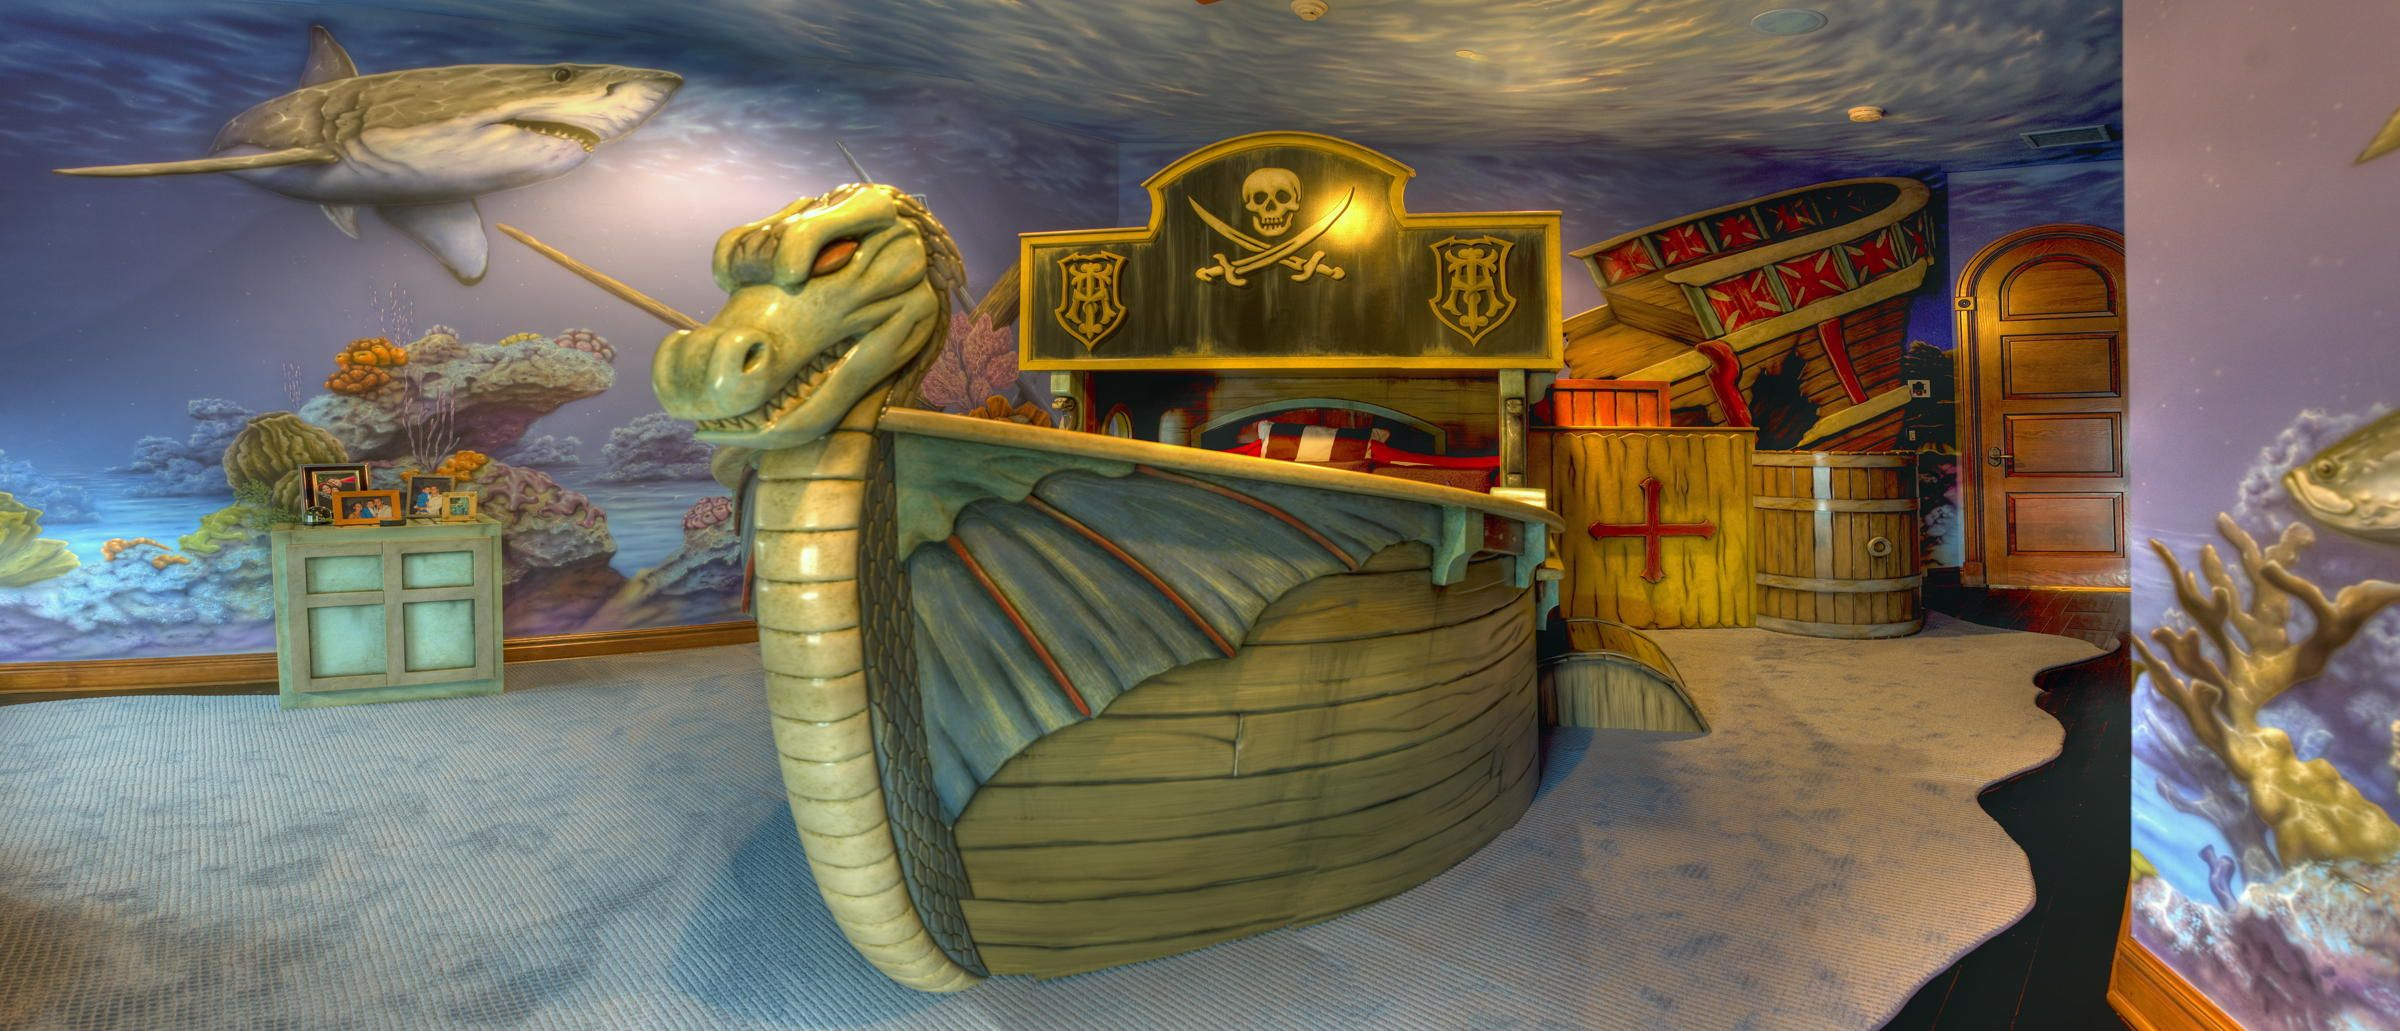 sunken pirate ships pictures Introduction Boat bed